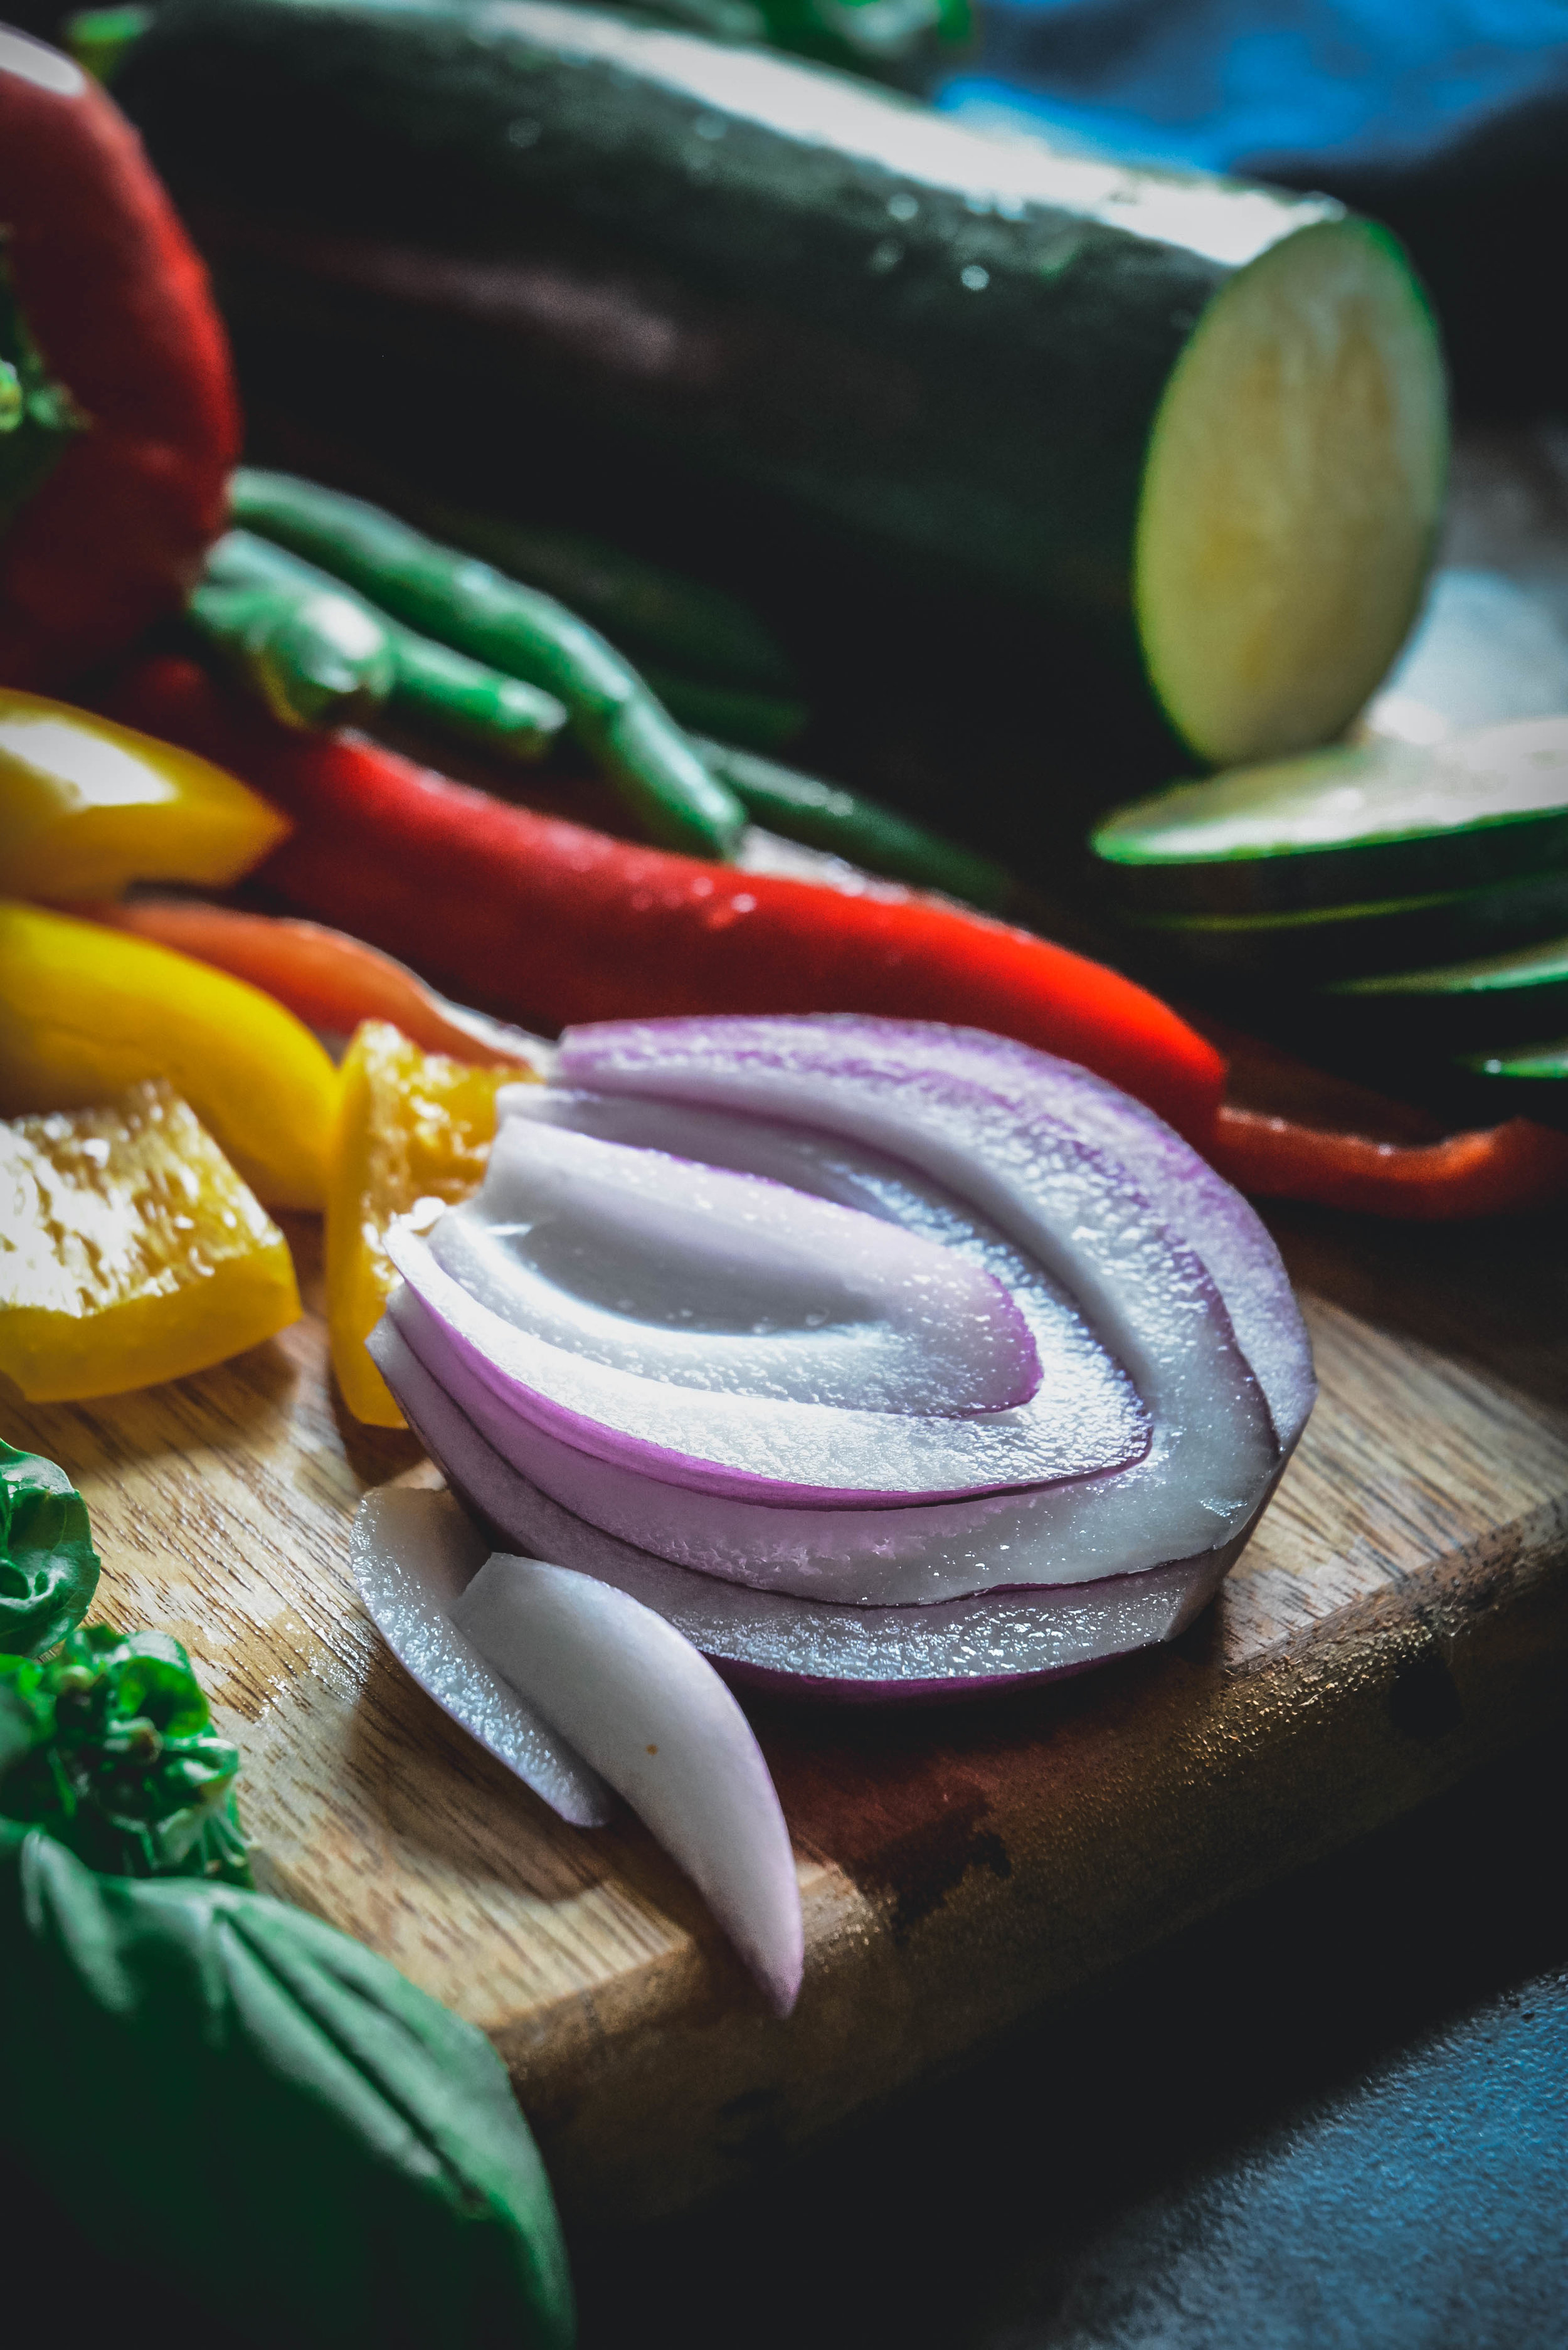 zucchini sliced, sliced red onion, sliced peppers on cutting board